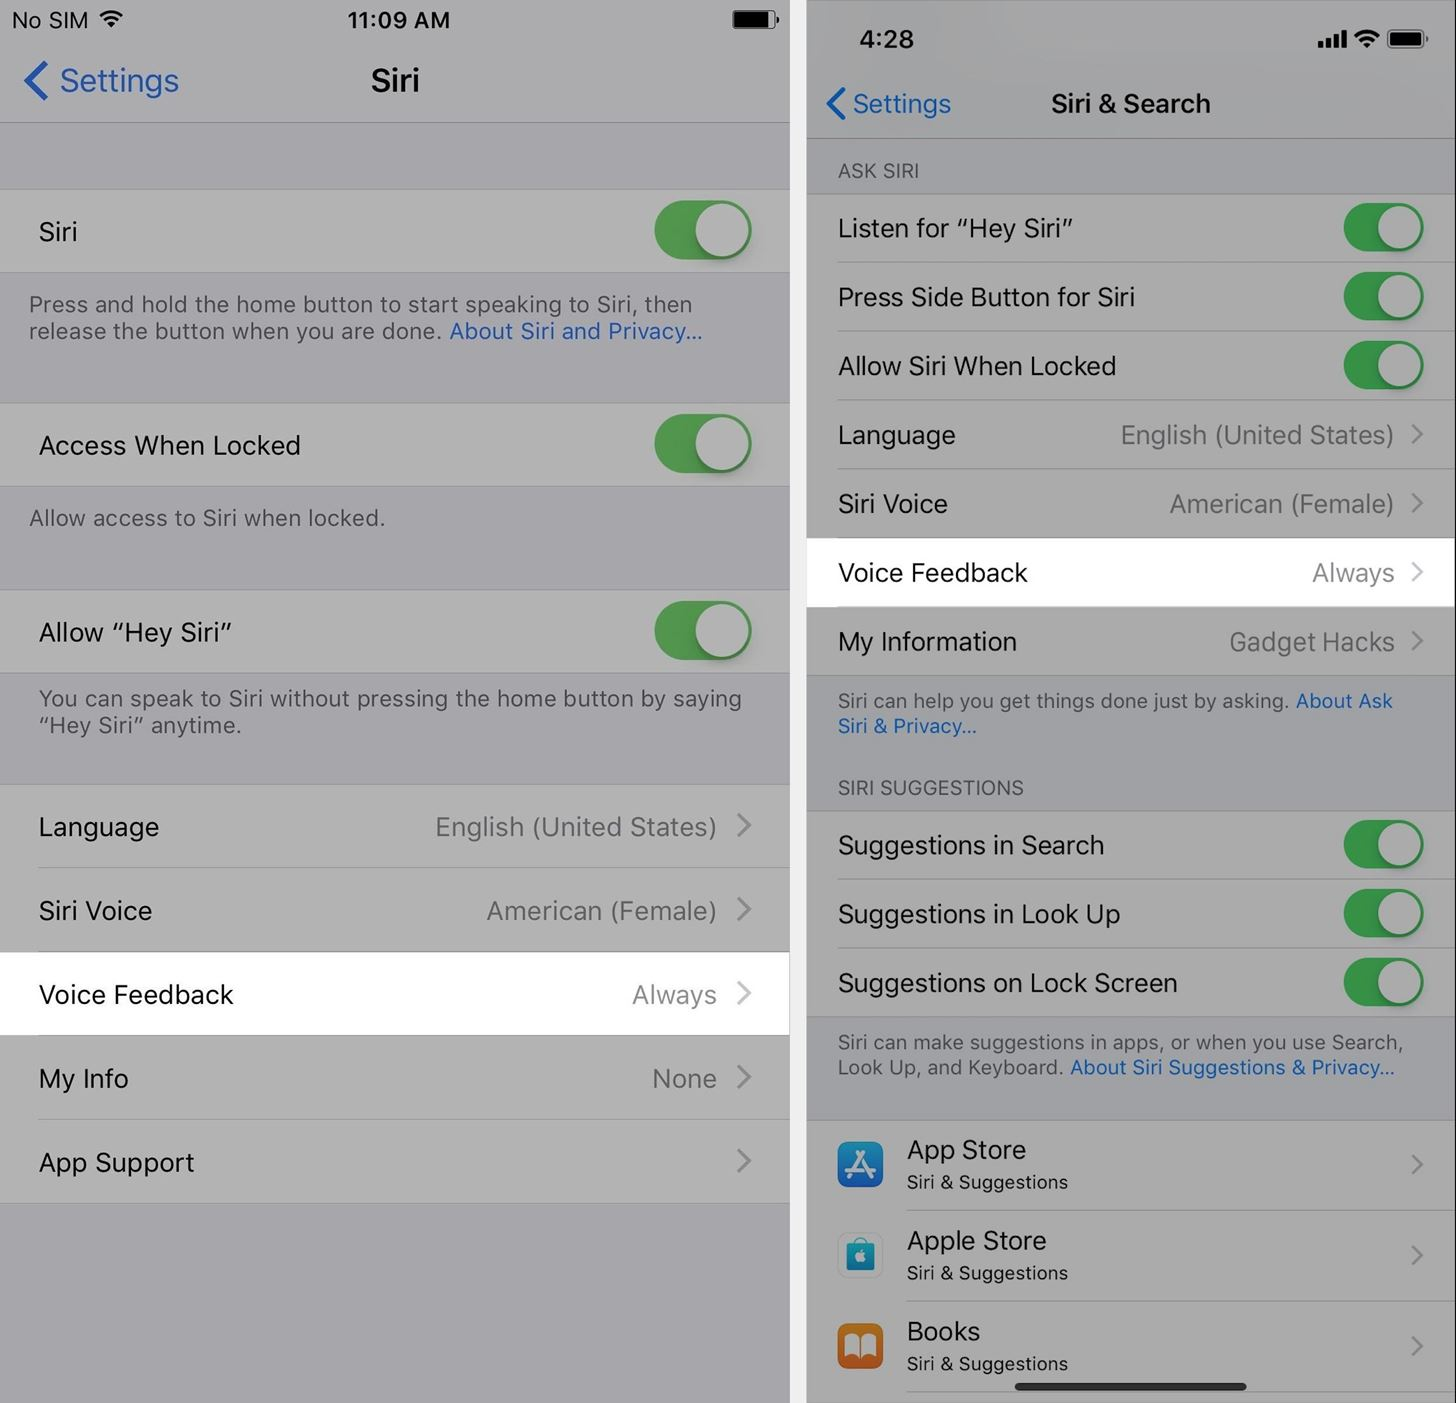 How to Turn Off Voice Feedback for Siri (Aka Mute Siri)